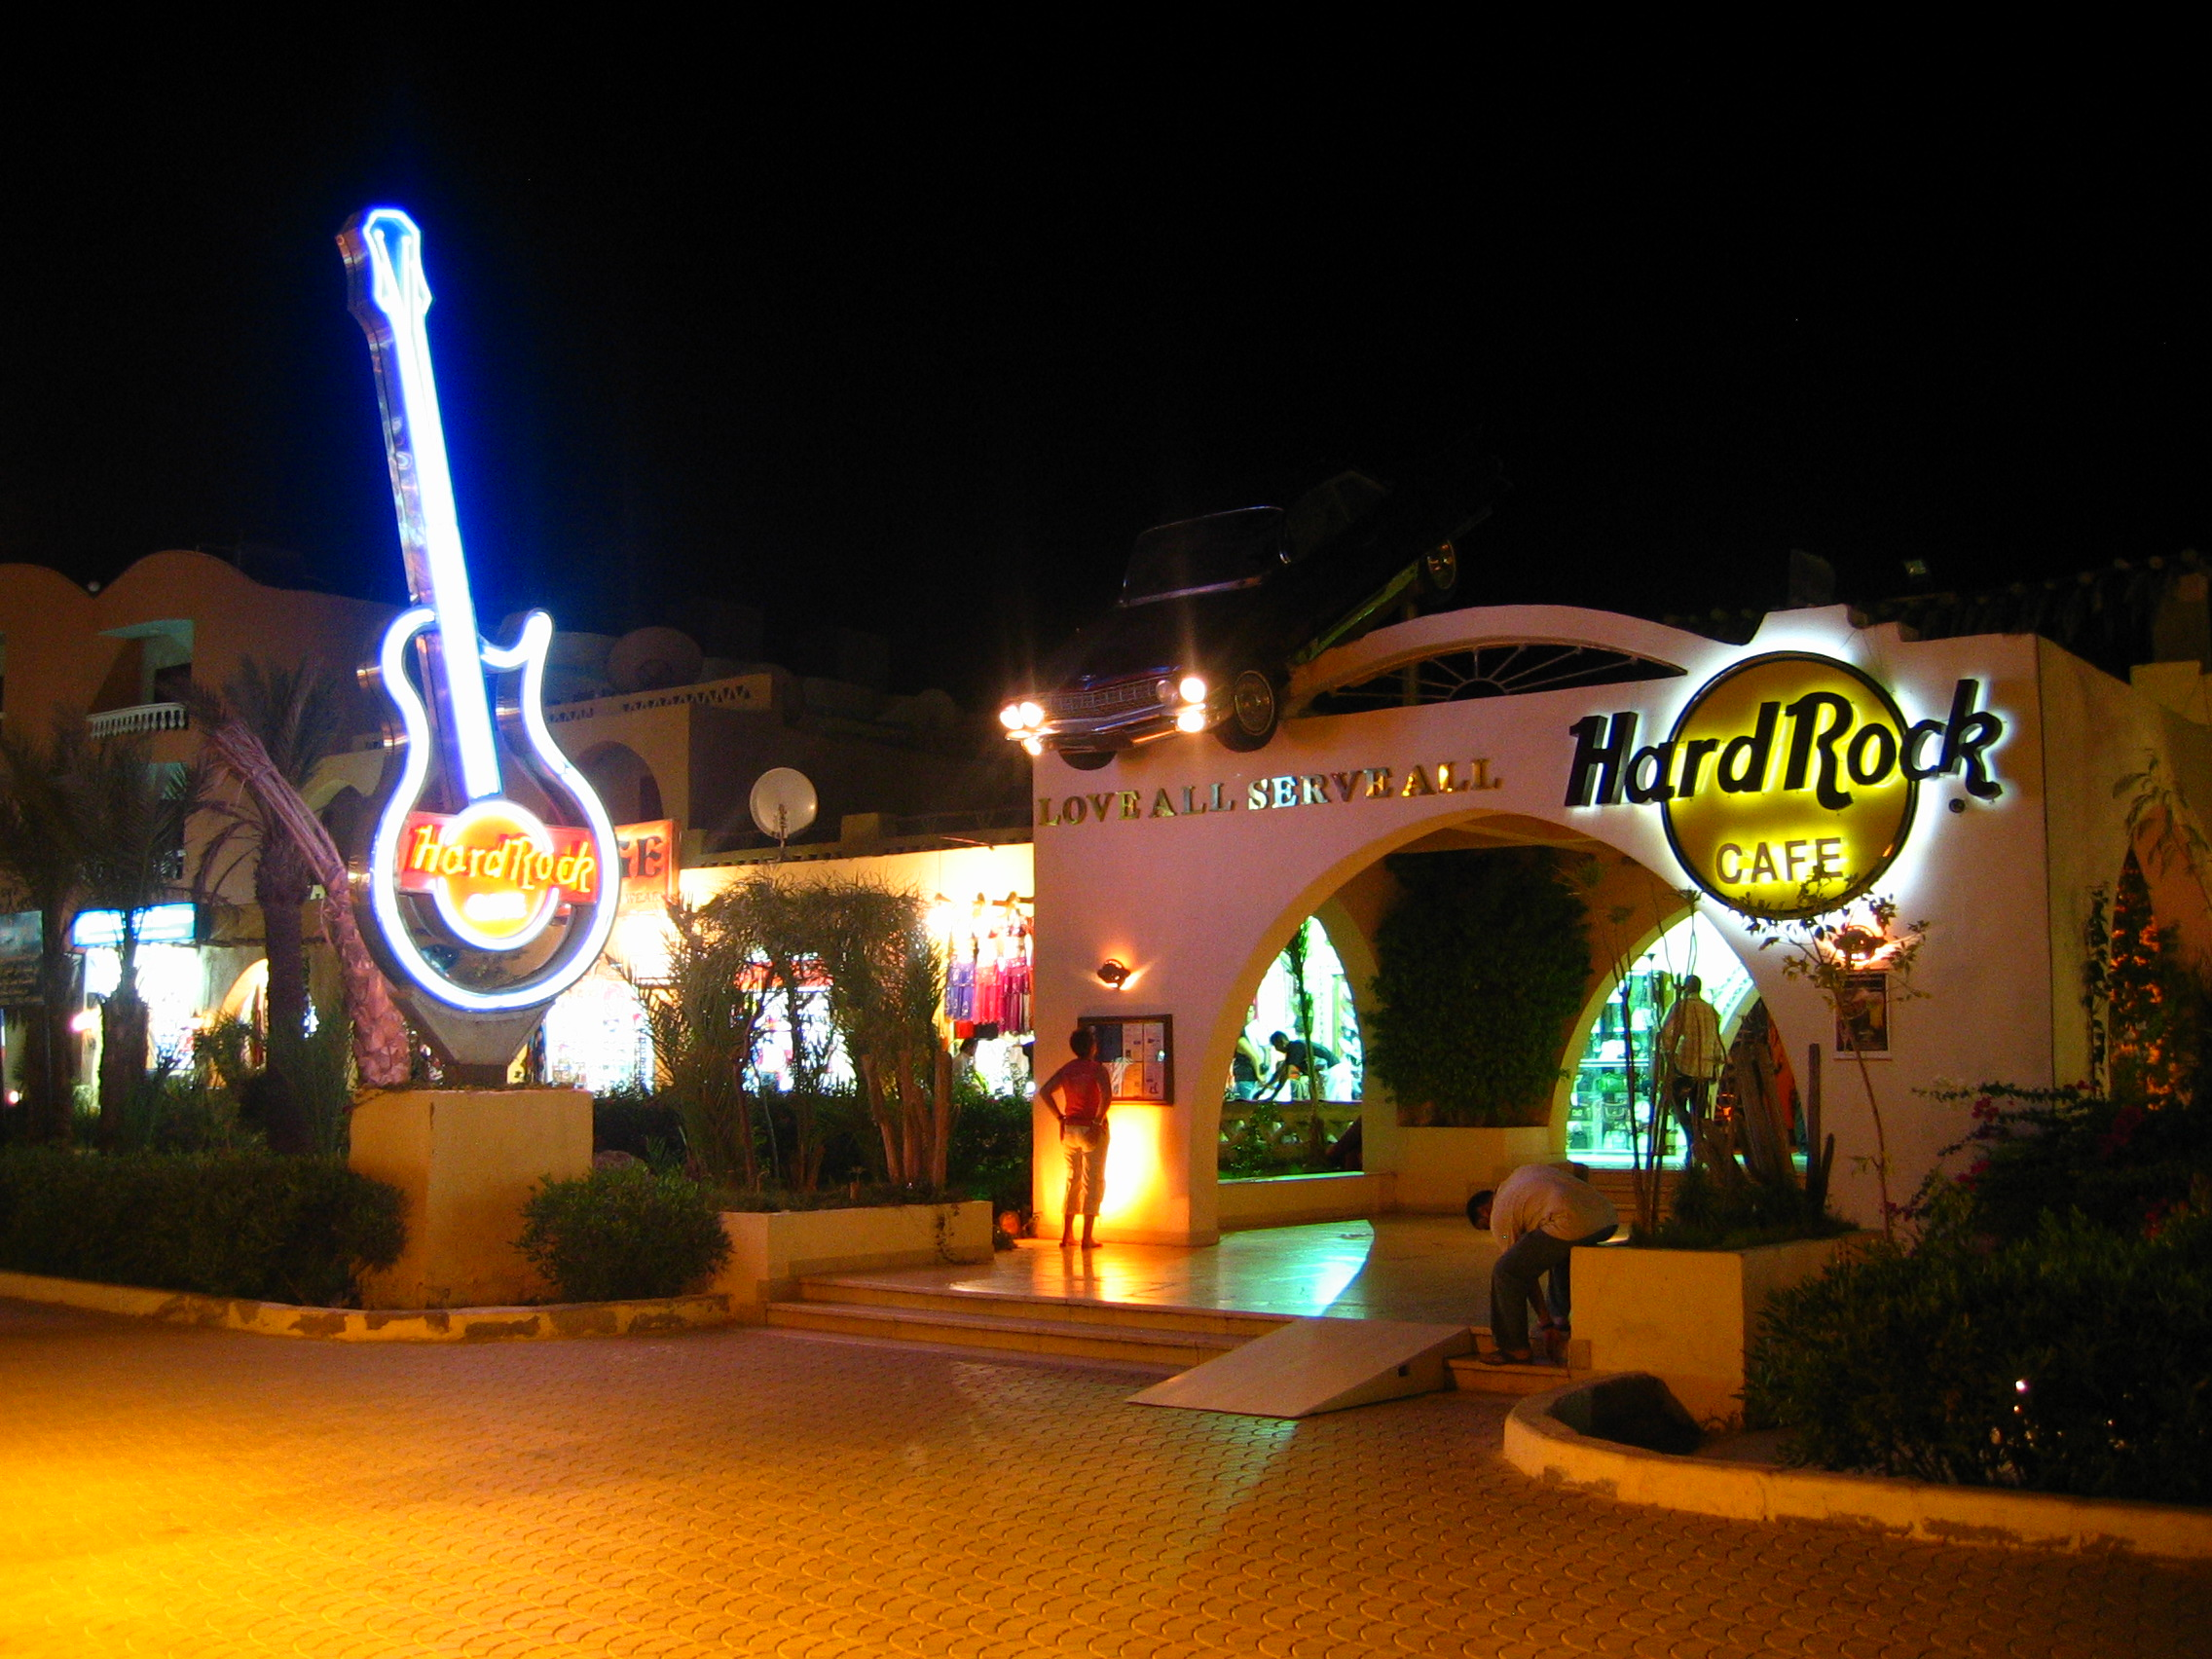 Hard Rock Cafe George Town Grand Cayman Cayman Islands